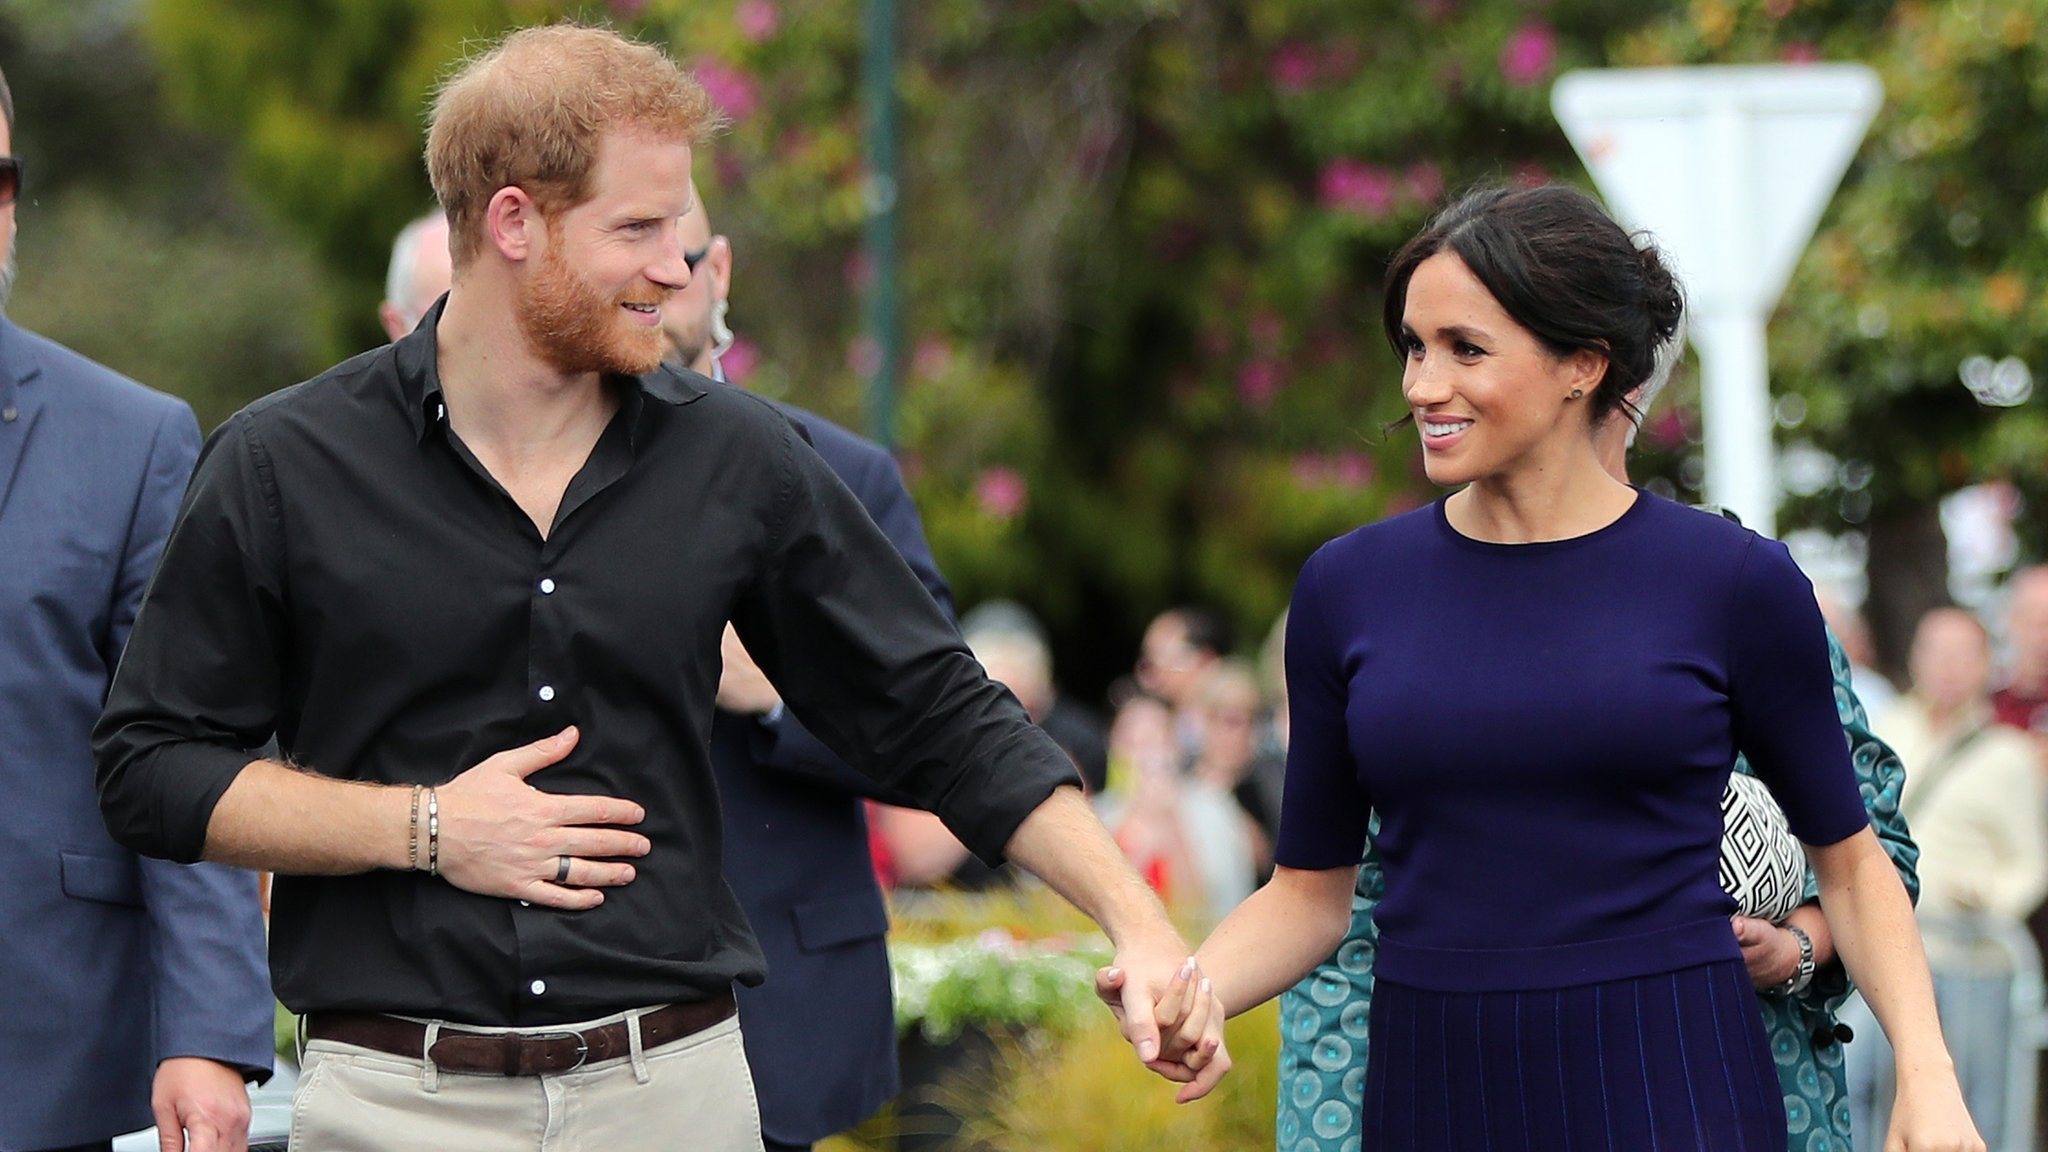 Could Harry and Meghan's child pay US taxes?